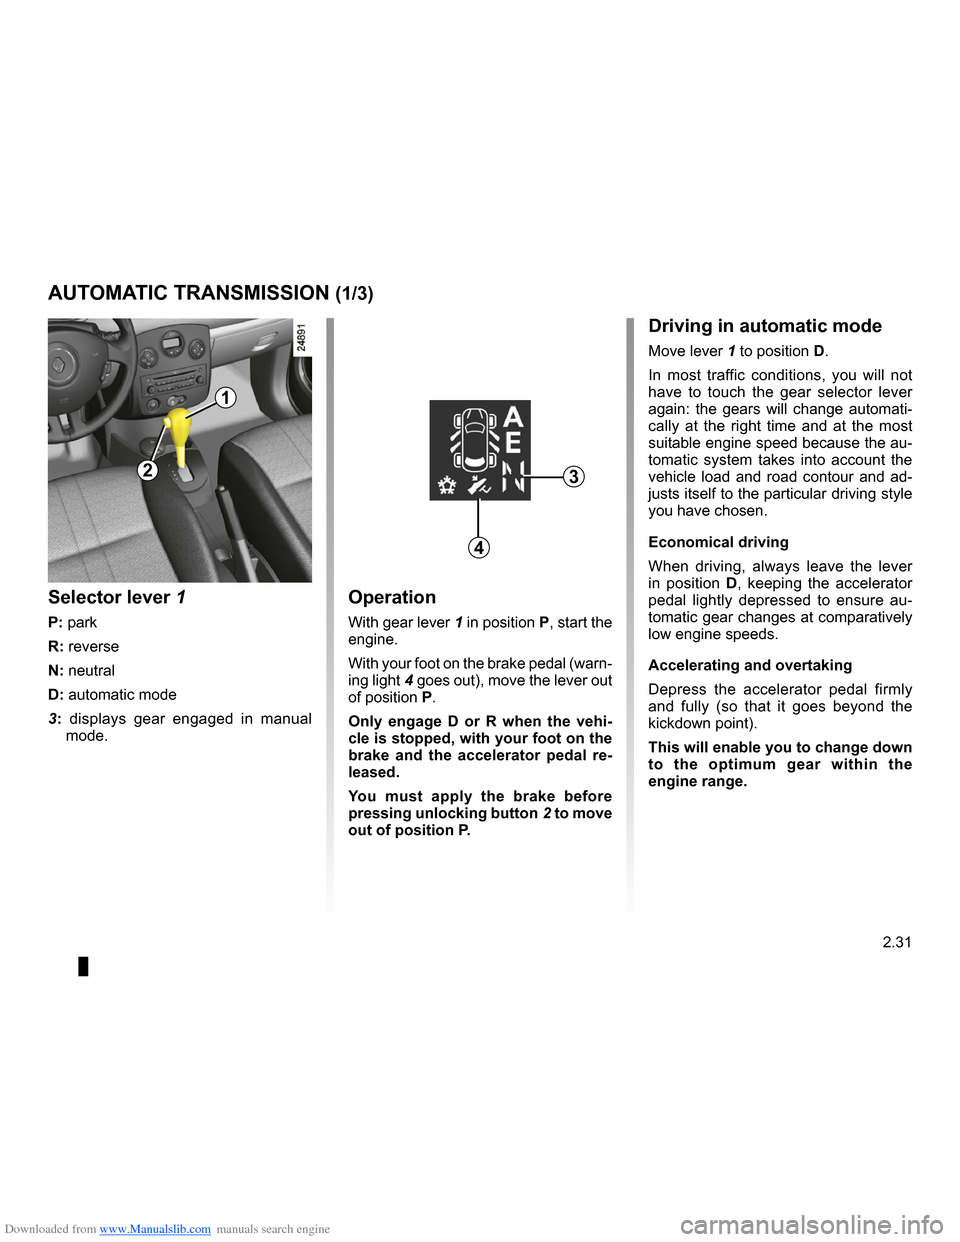 RENAULT CLIO 2009 X85 / 3.G Owners Manual, Page 123